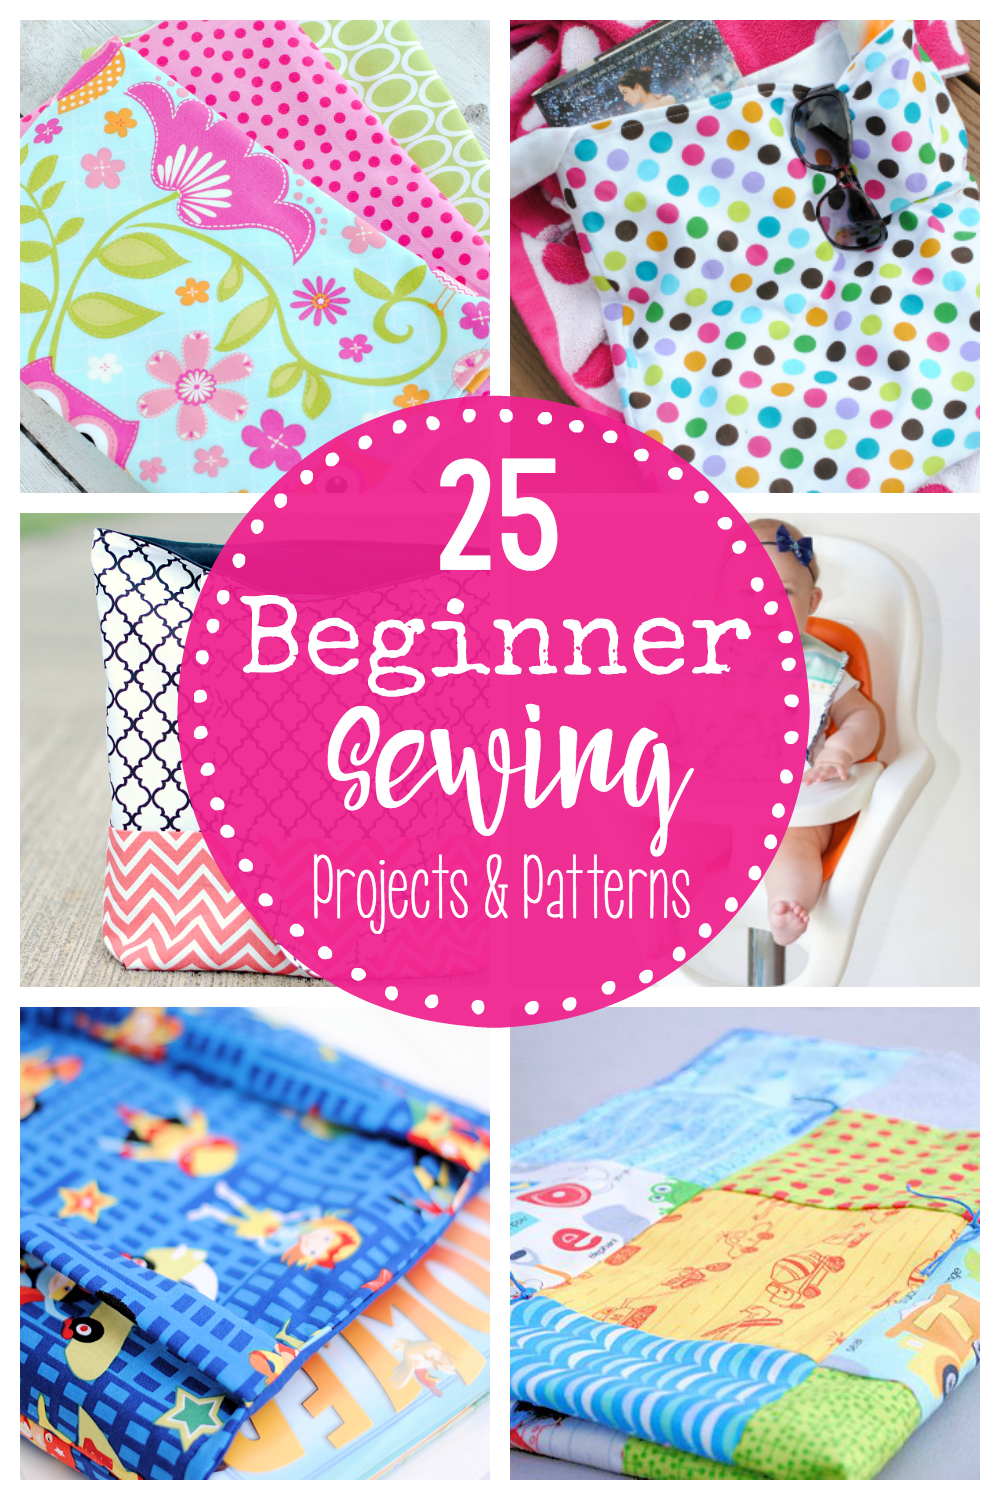 Easy Beginner Sewing Projects and Patterns-Grab these free and easy sewing projects that are perfect for beginning sewers and anyone who loves an easy sewing pattern. #sewing #learntosew #sew #patterns #freepatterns